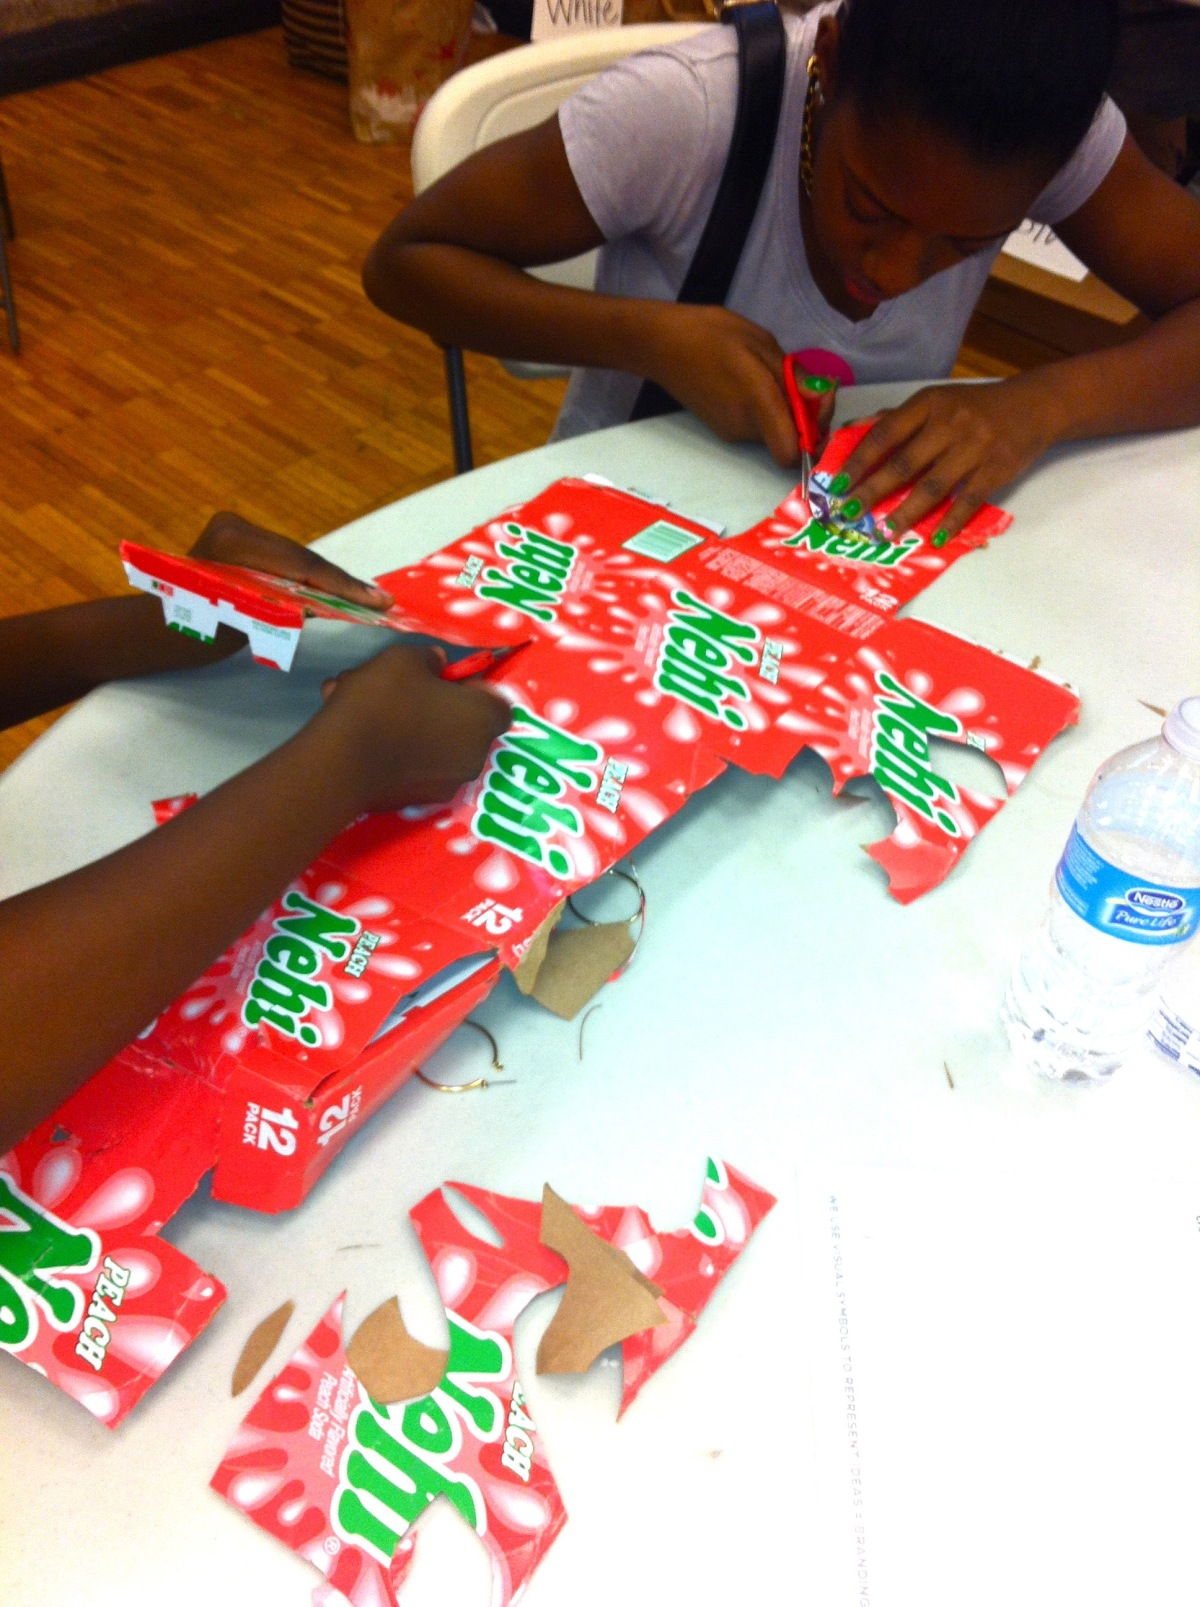 do_good_students_create_art_from_recycled_goods_2661.jpg